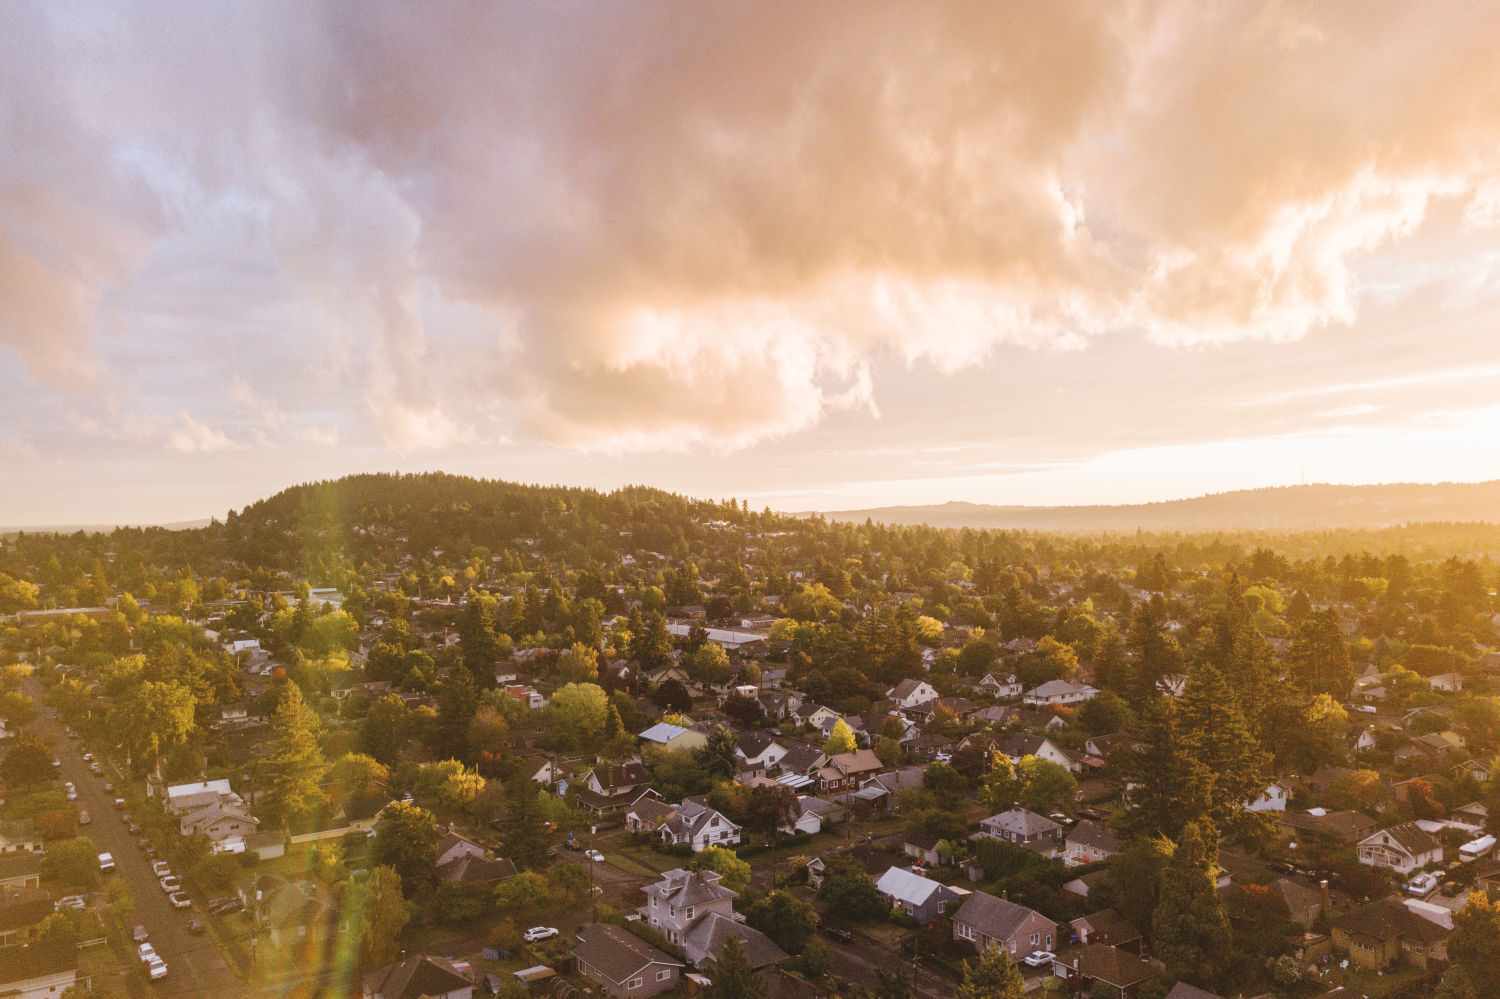 Portland Neighborhoods by the Numbers 2018: The City ... on oregon road construction map, oregon agricultural map, oregon legislative map, oregon state parks map, oregon landmarks map, oregon industrial map, oregon income map, oregon water rights map, oregon district court map, oregon sports map, oregon road conditions map, oregon grizzly bear map, oregon recreational map, oregon town map, oregon street map, oregon united states map, oregon colleges map, oregon fire districts map, oregon electric utilities map, oregon farm map,